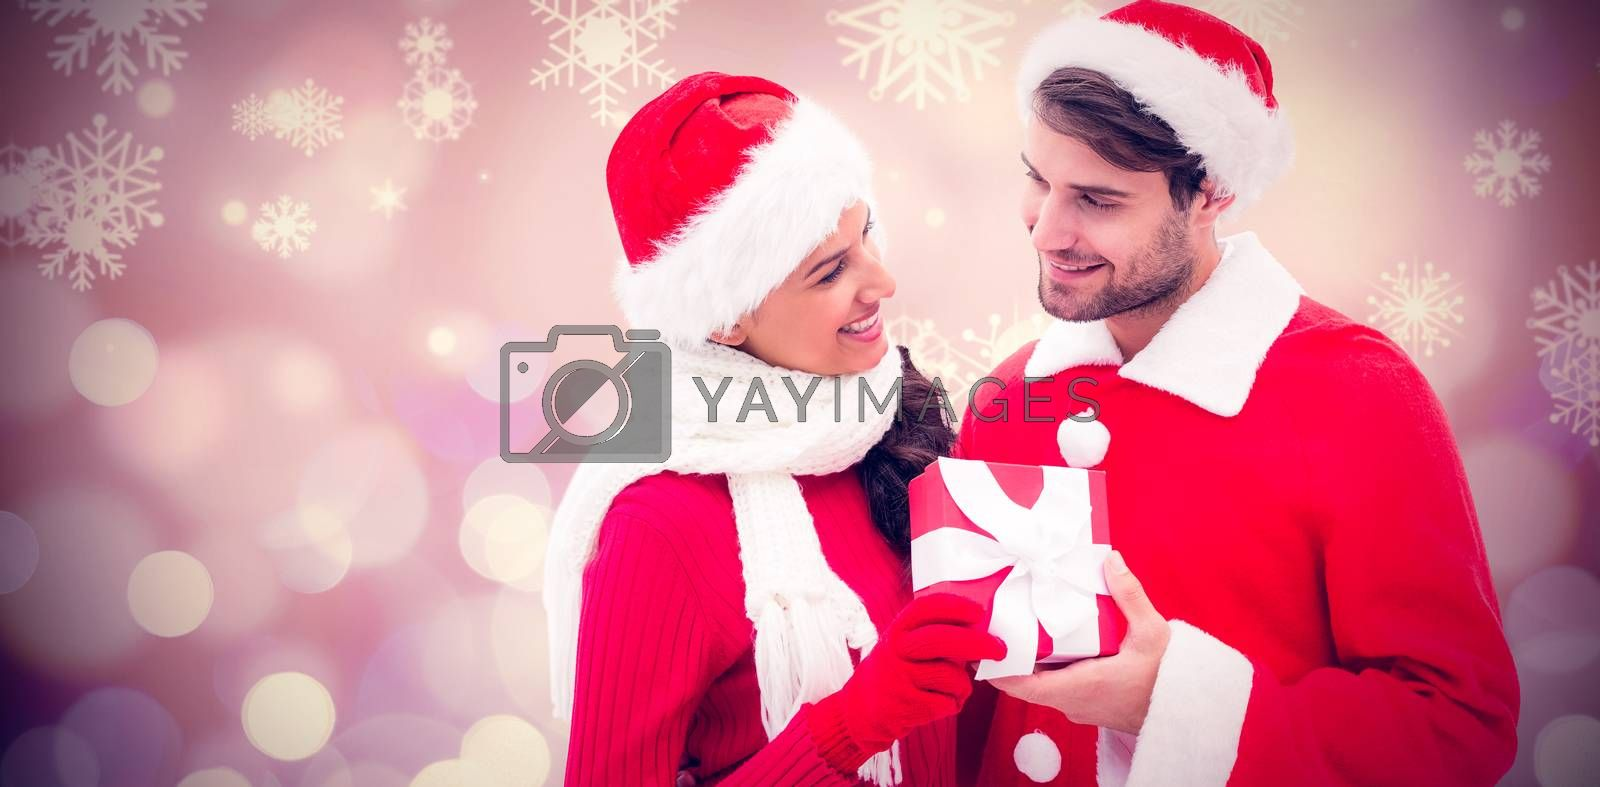 Festive young couple holding gift against glowing christmas background